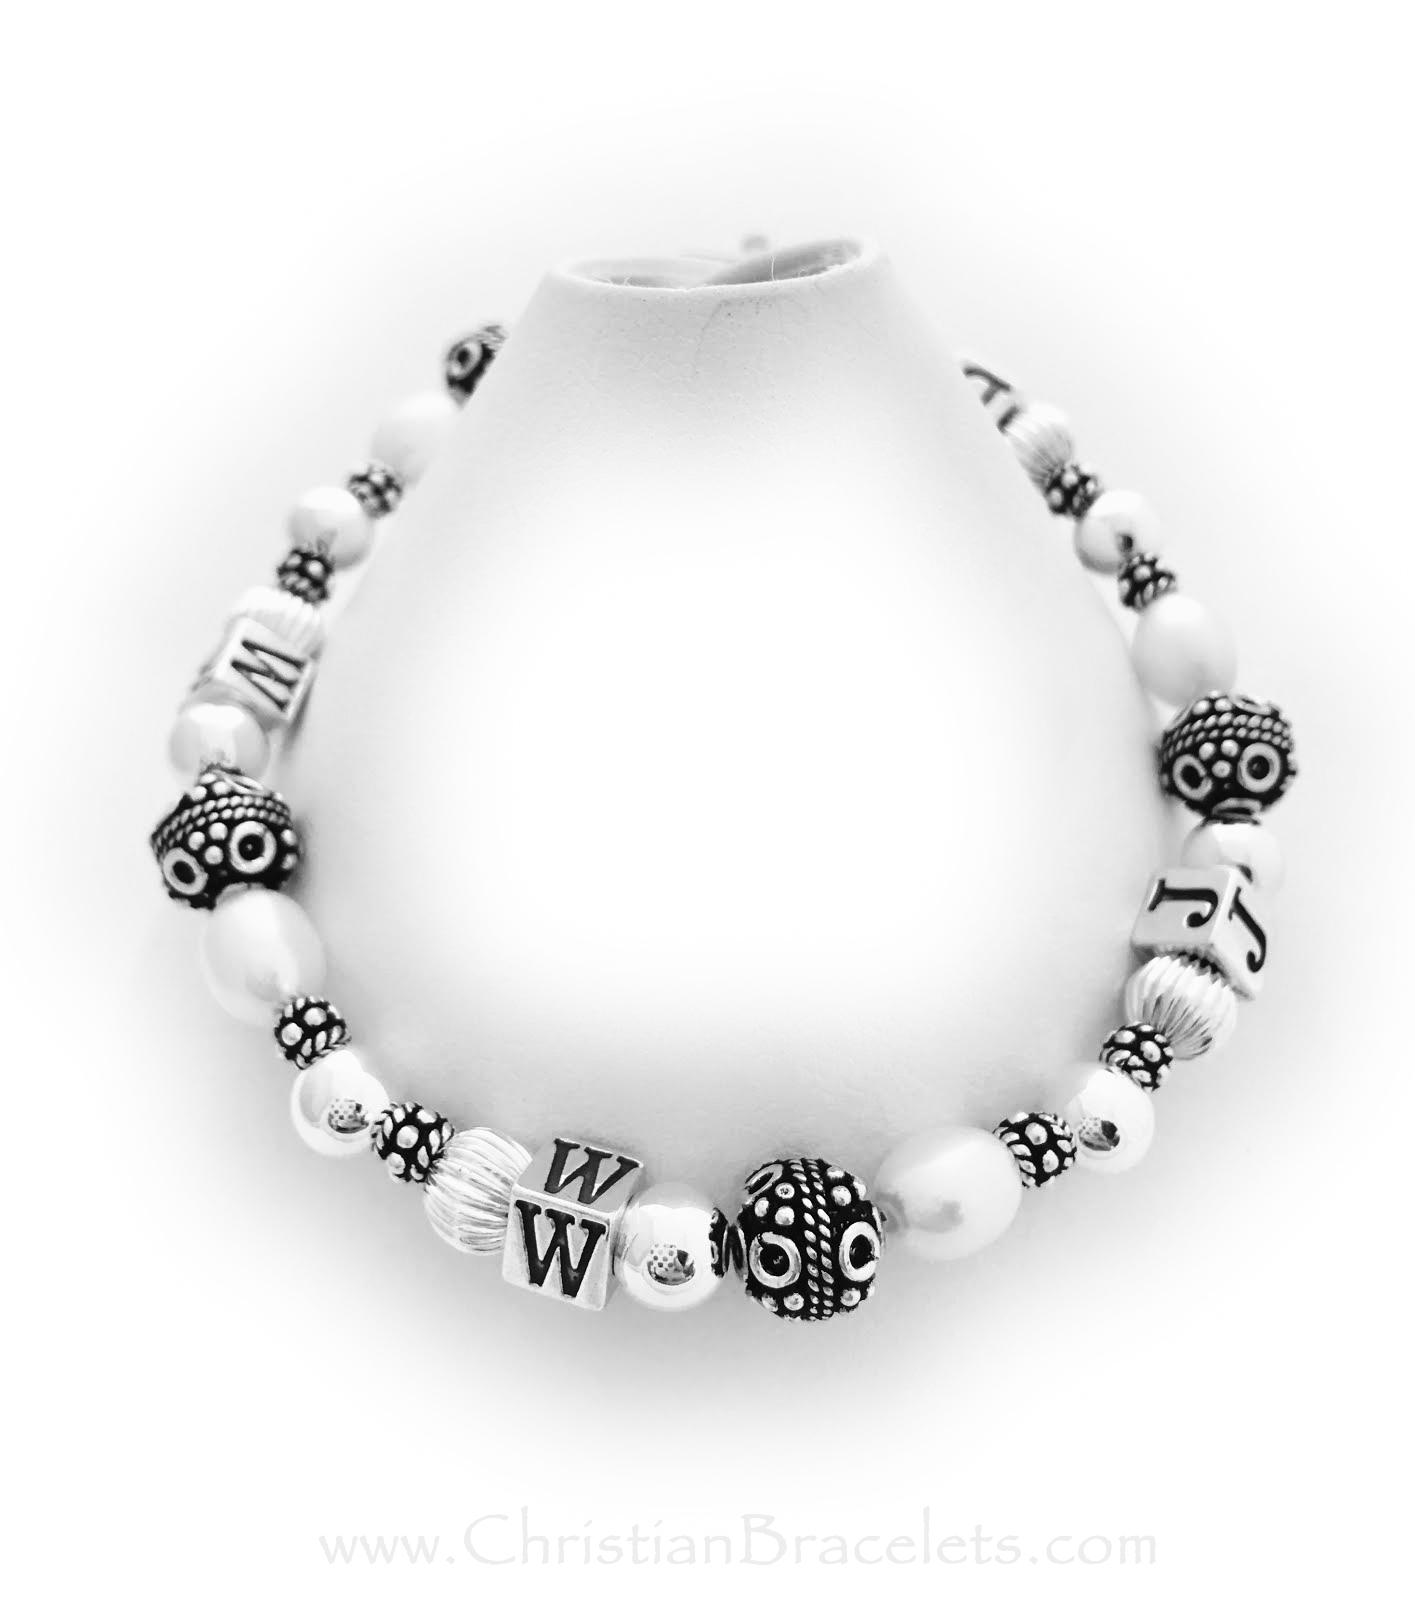 WWJD Sterling Silver  Bracelet with Swarovski Pearls and beautiful decorative Bali Beads. WWJD-1